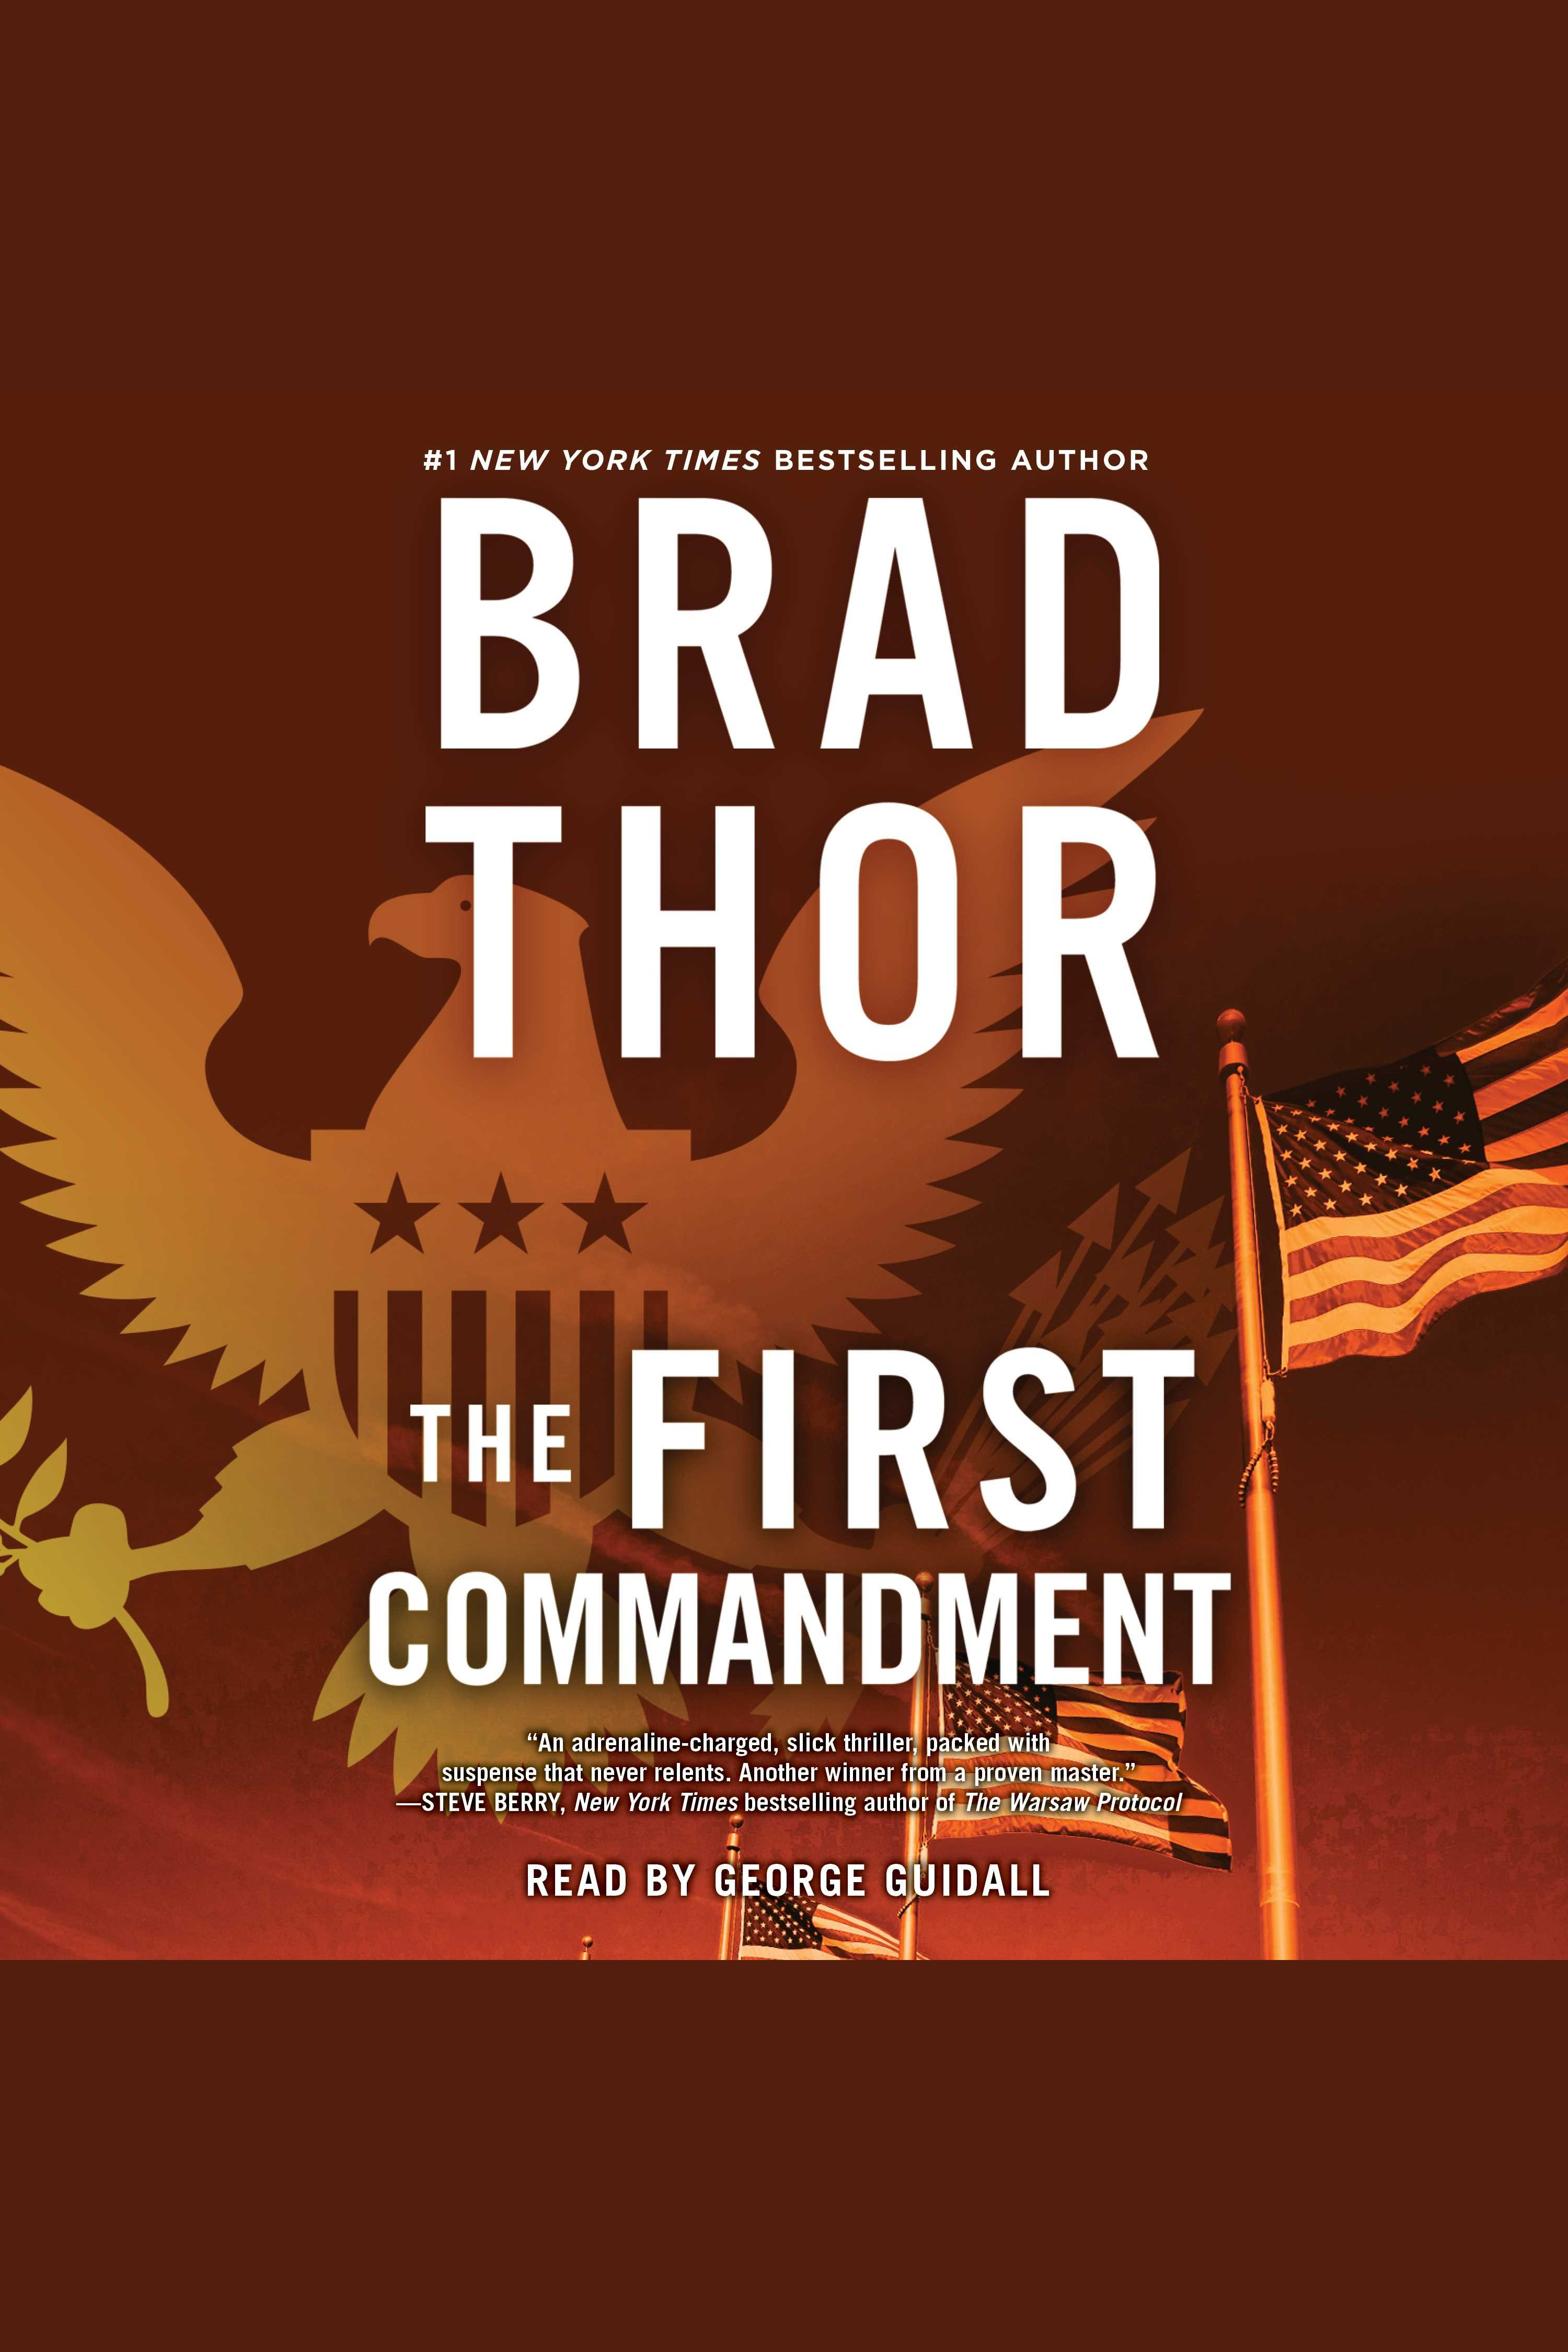 First Commandment cover image